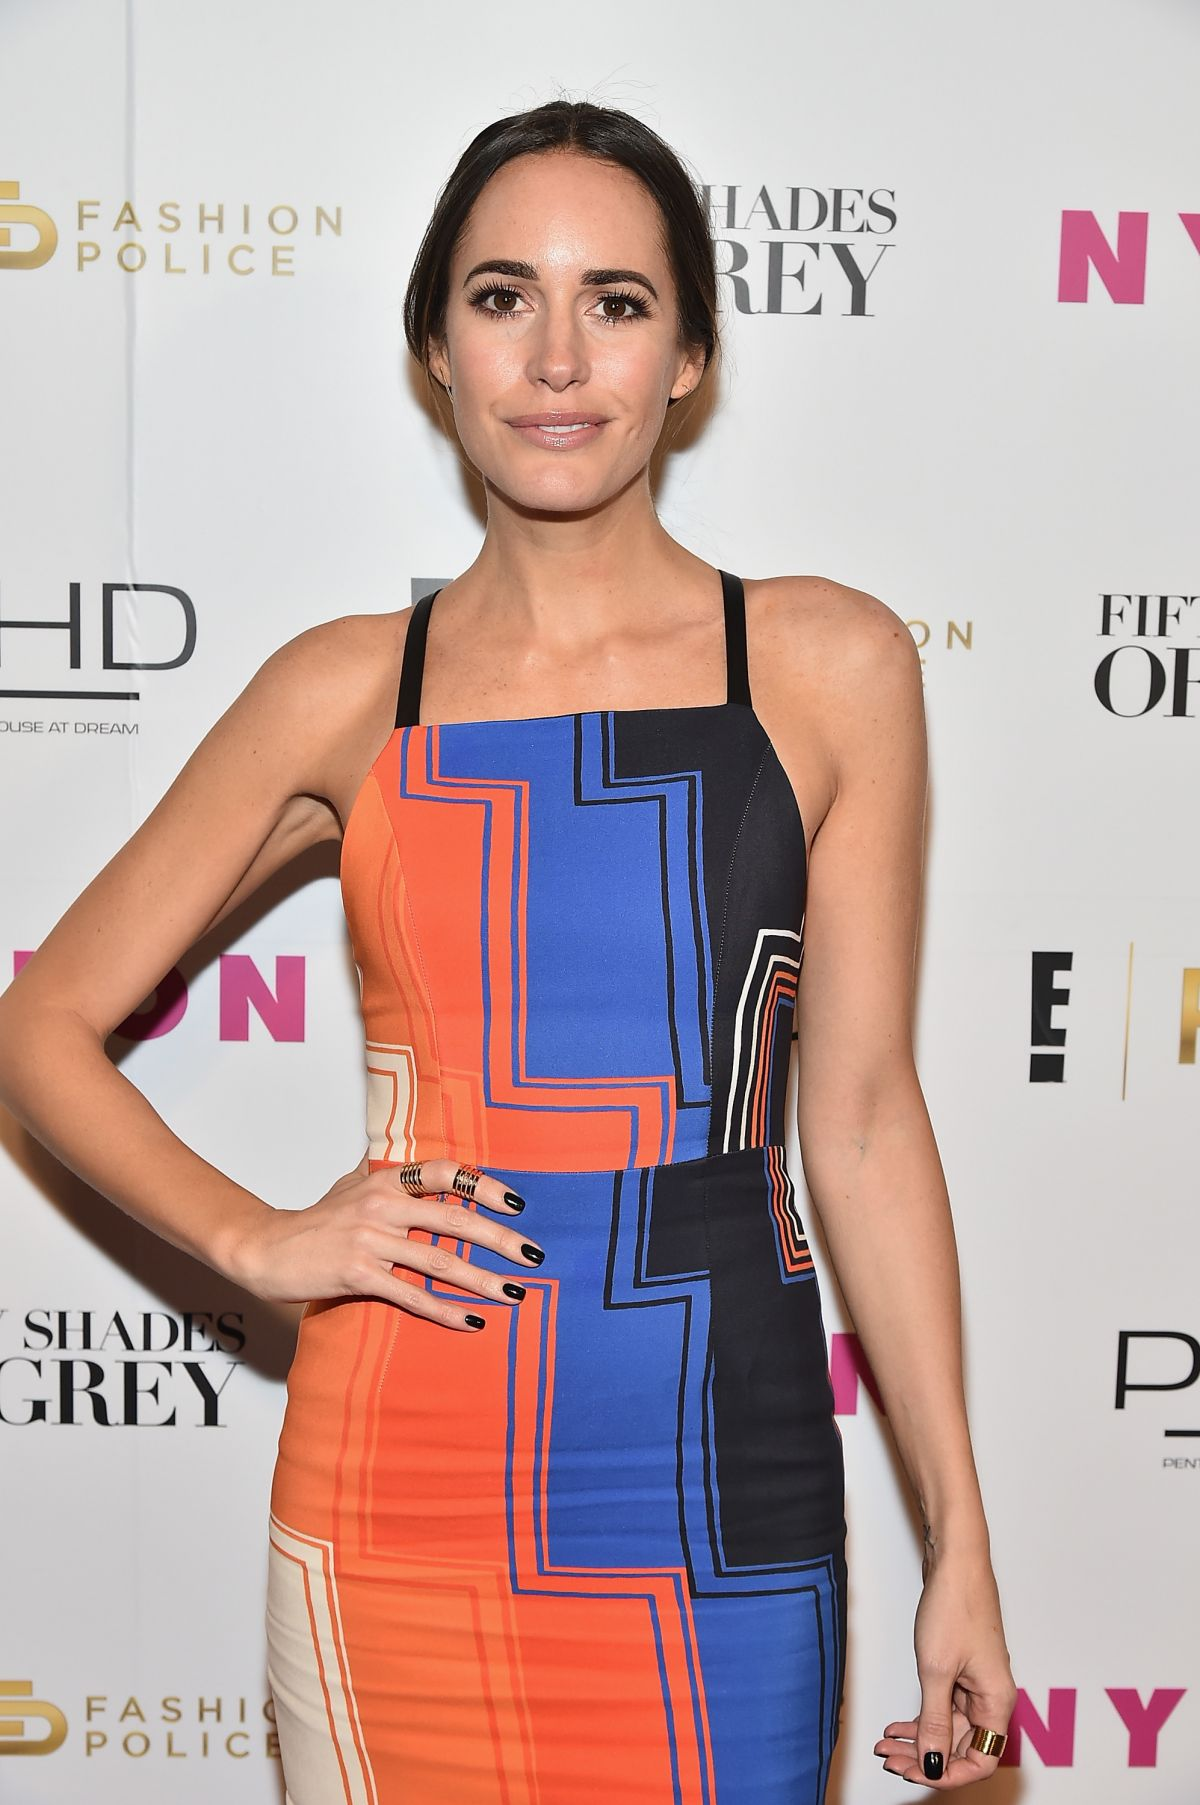 LOUISE ROE at E! Fashion Police and Nylon Fifty Shades of Fashion Event in New York